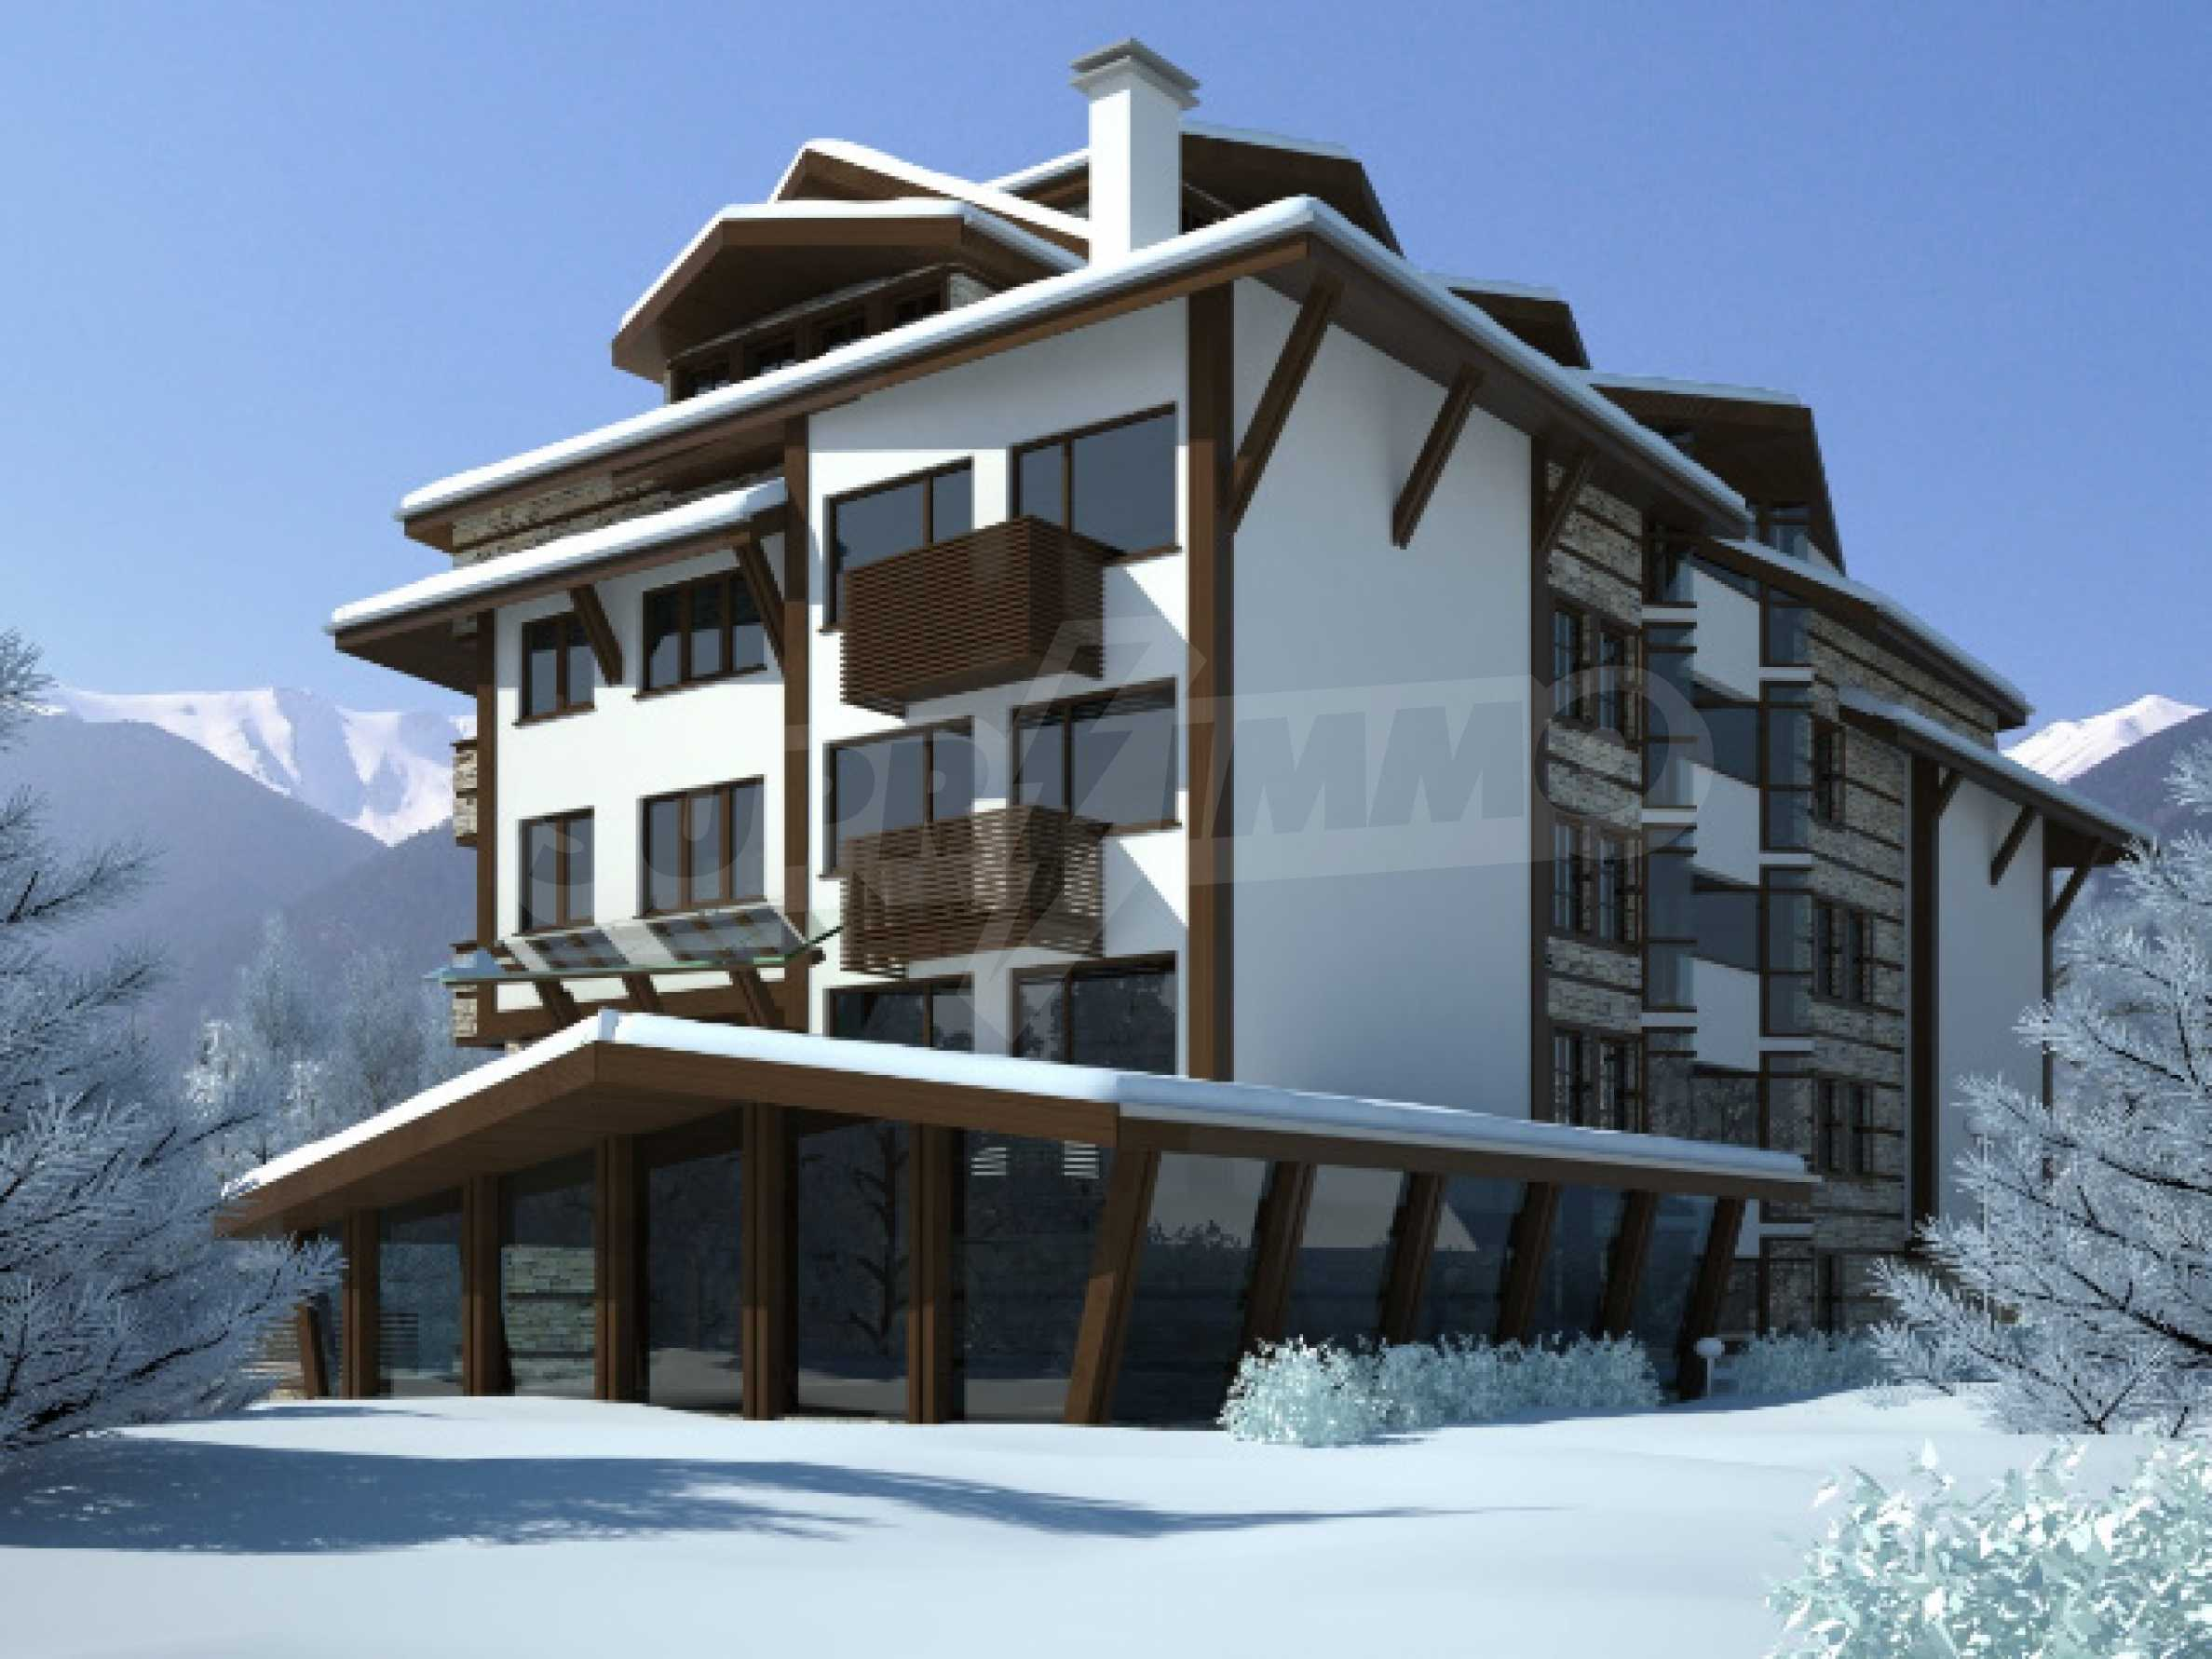 Chateau Blanc: Probably the best investment opportunity in Bansko... 2